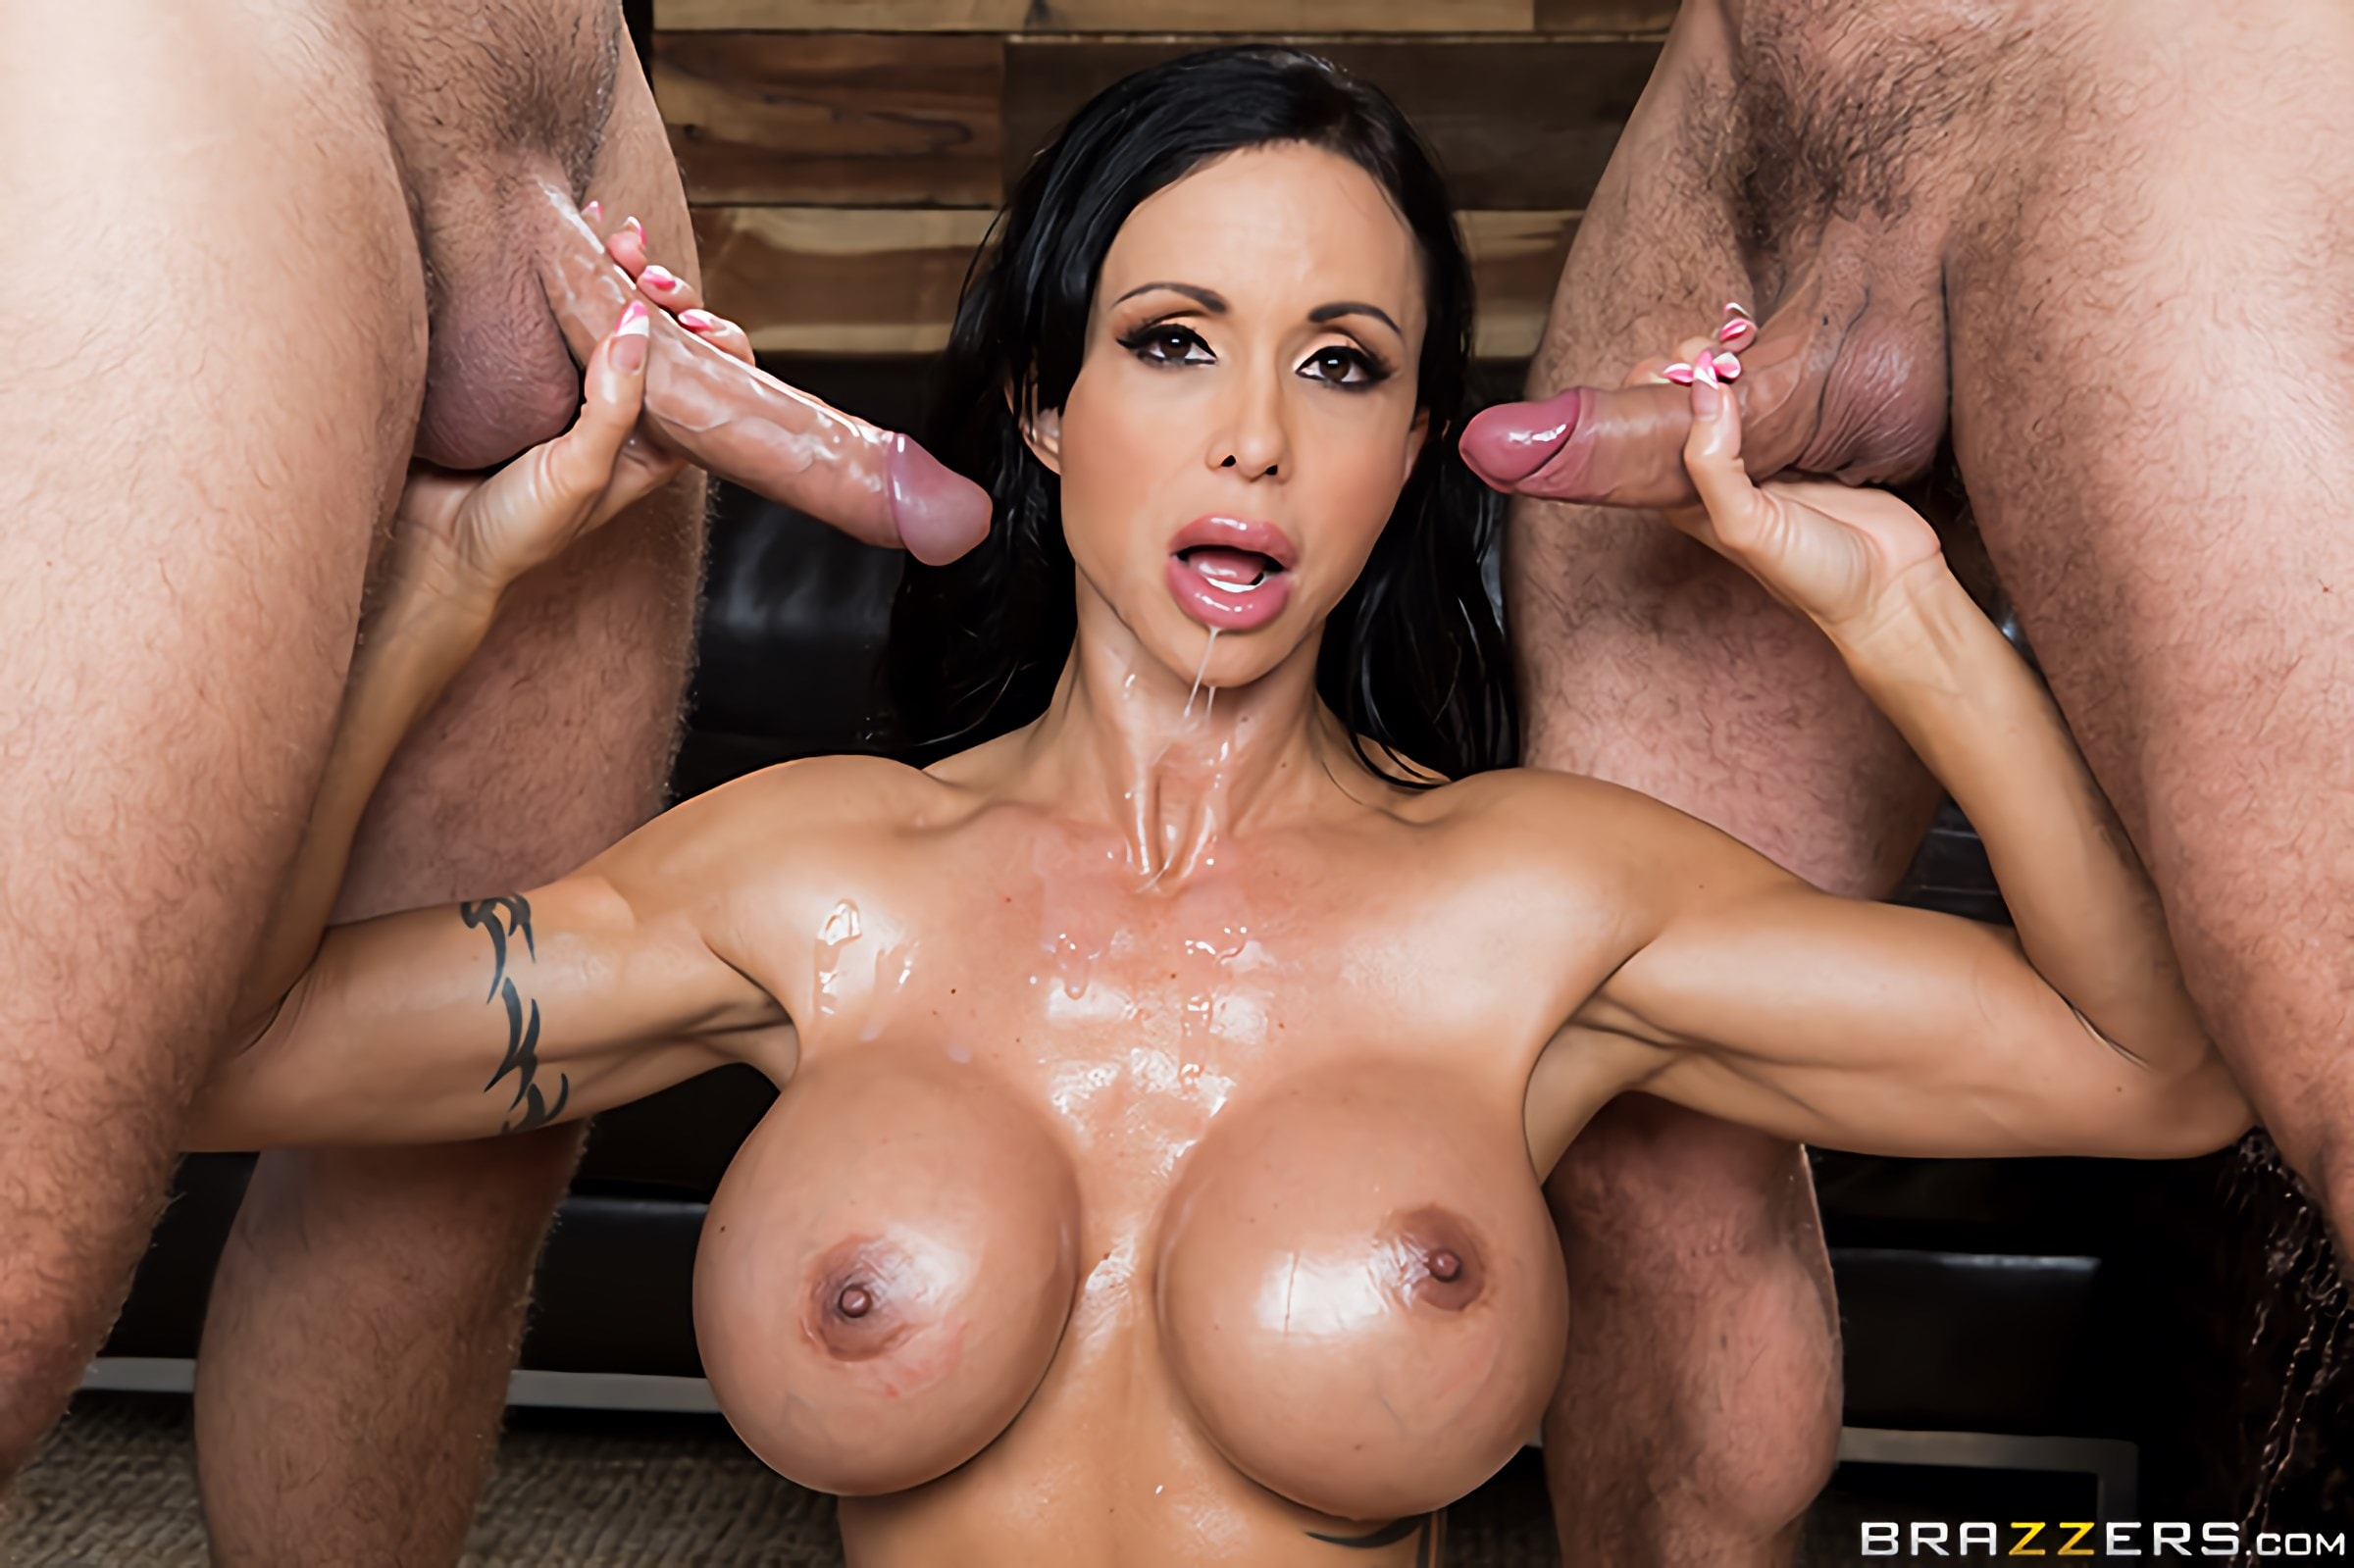 Brazzers 'My Two Fuck Boys' starring Jewels Jade (Photo 11)